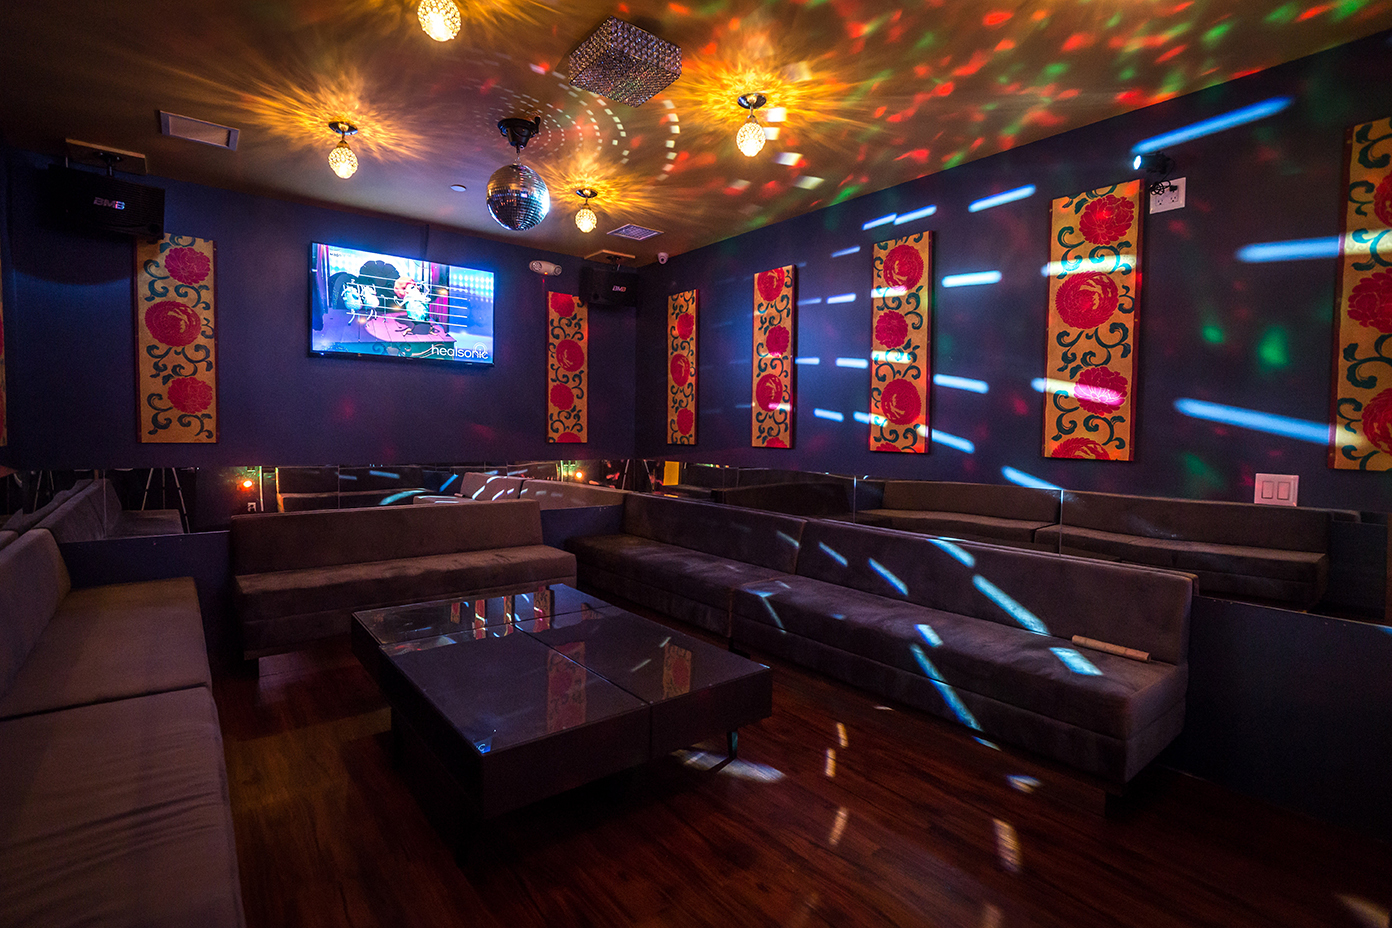 The best birthday party ideas in NYC